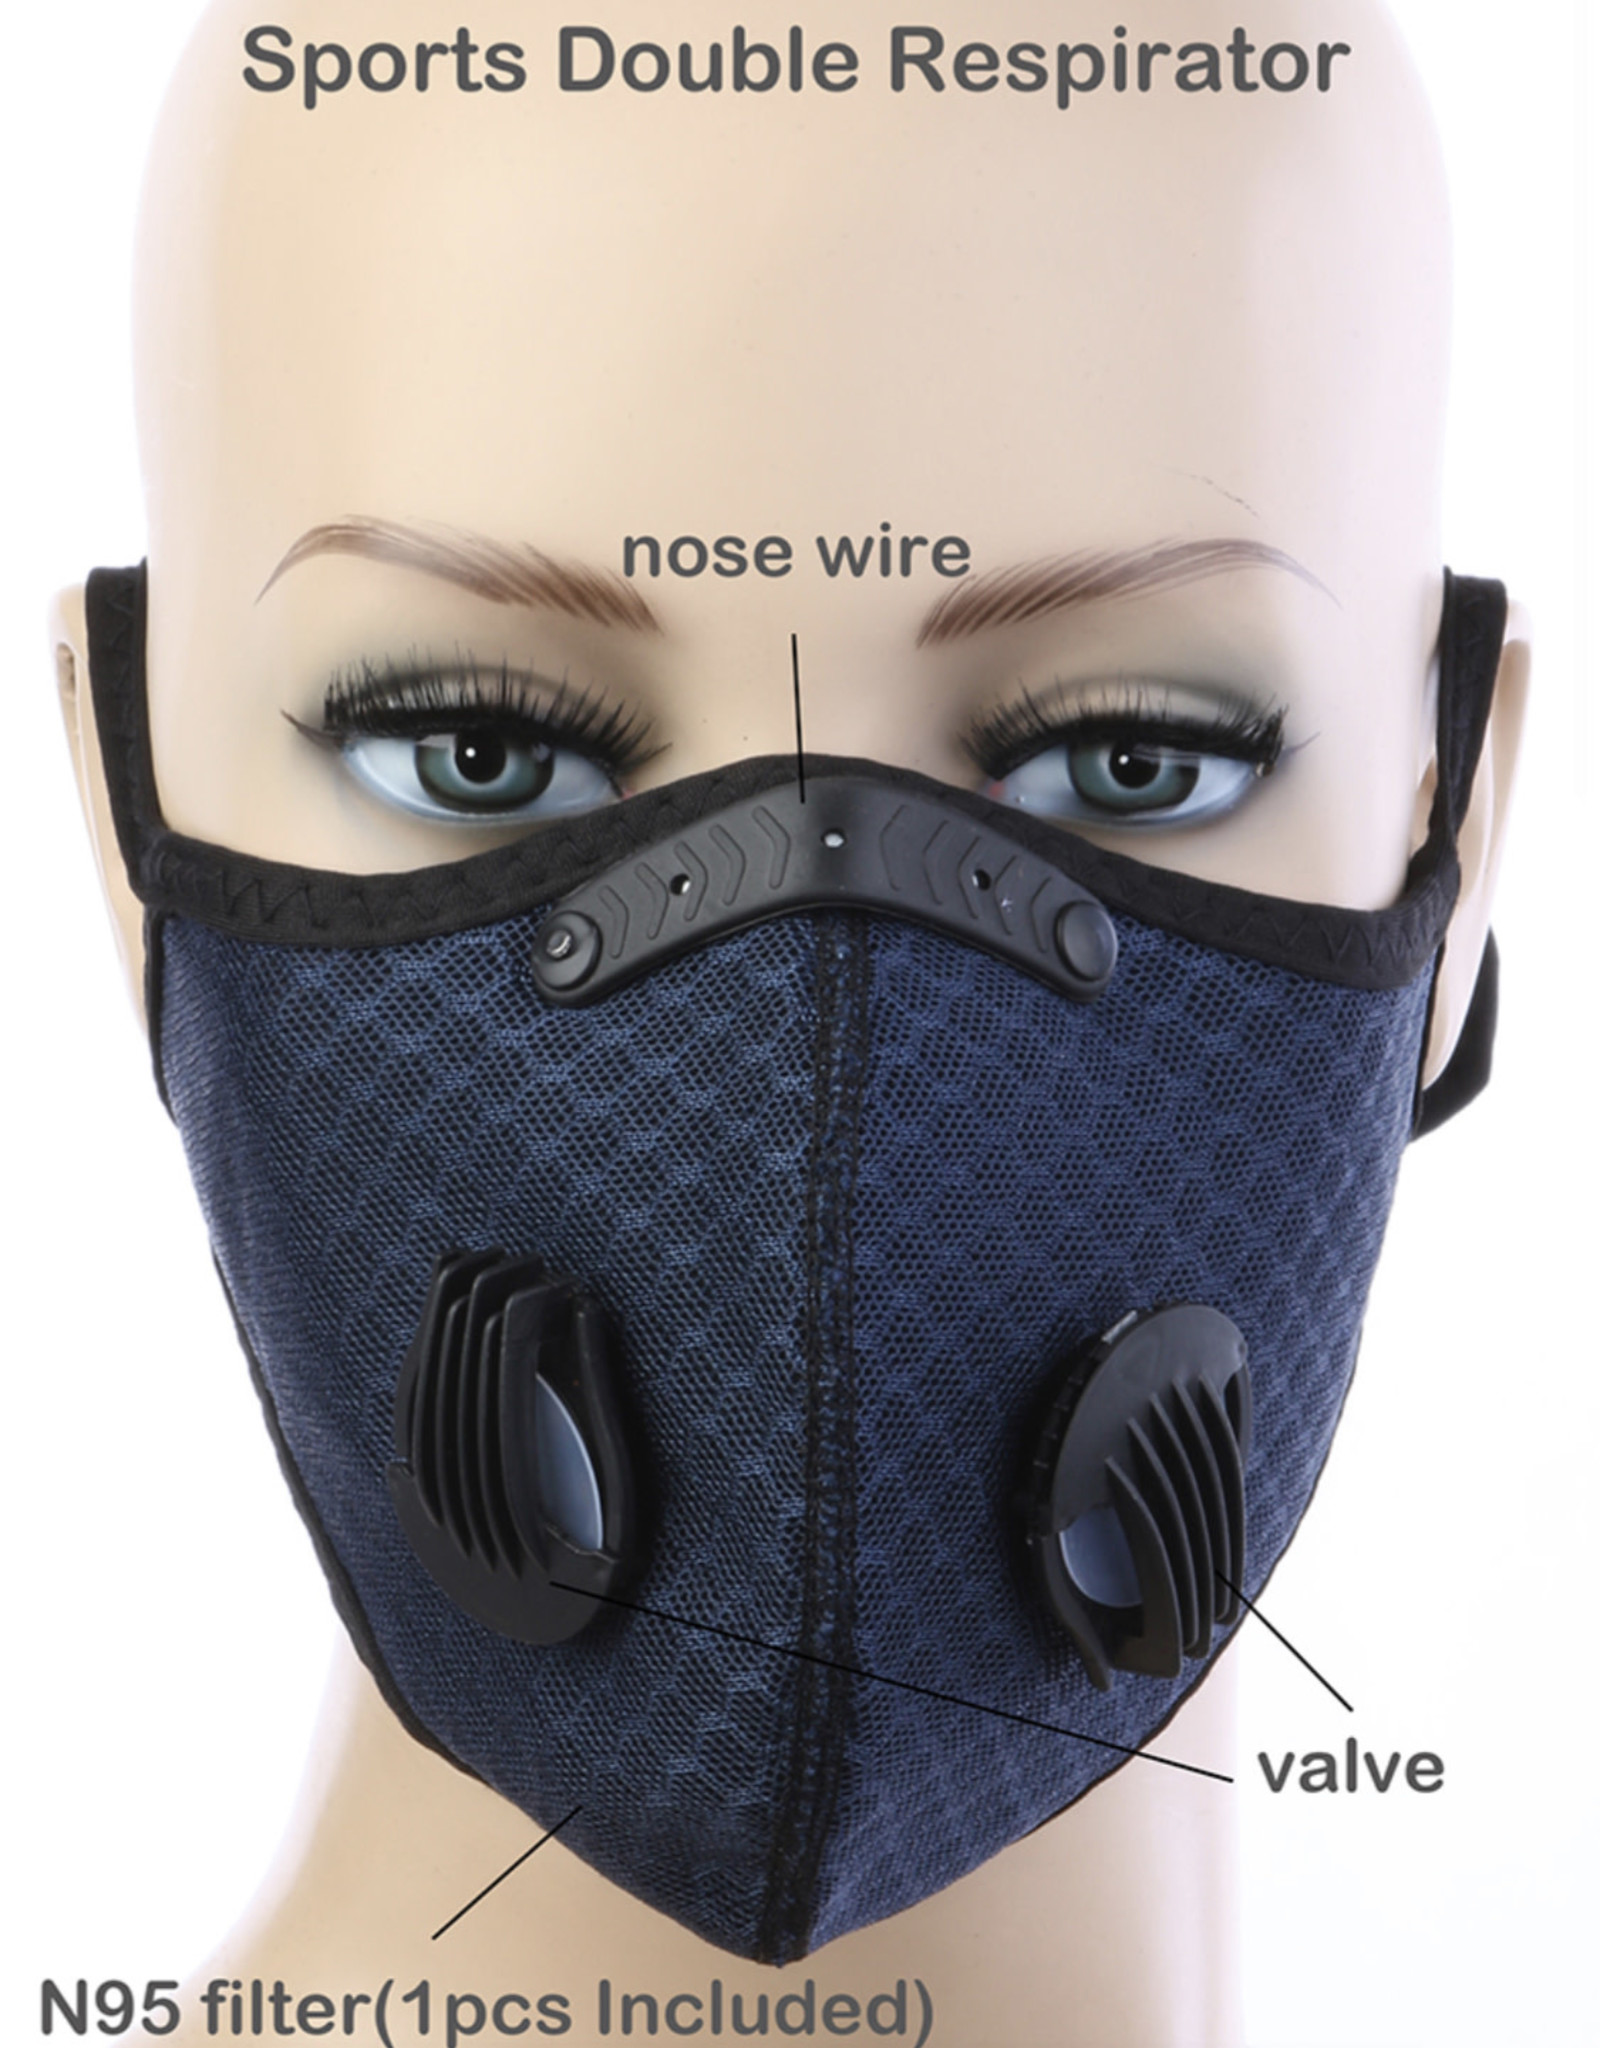 FACE MASK OUTDOOR SPORTS 2 RESPIRATOR VALVE W KN95 FILTER NAVY